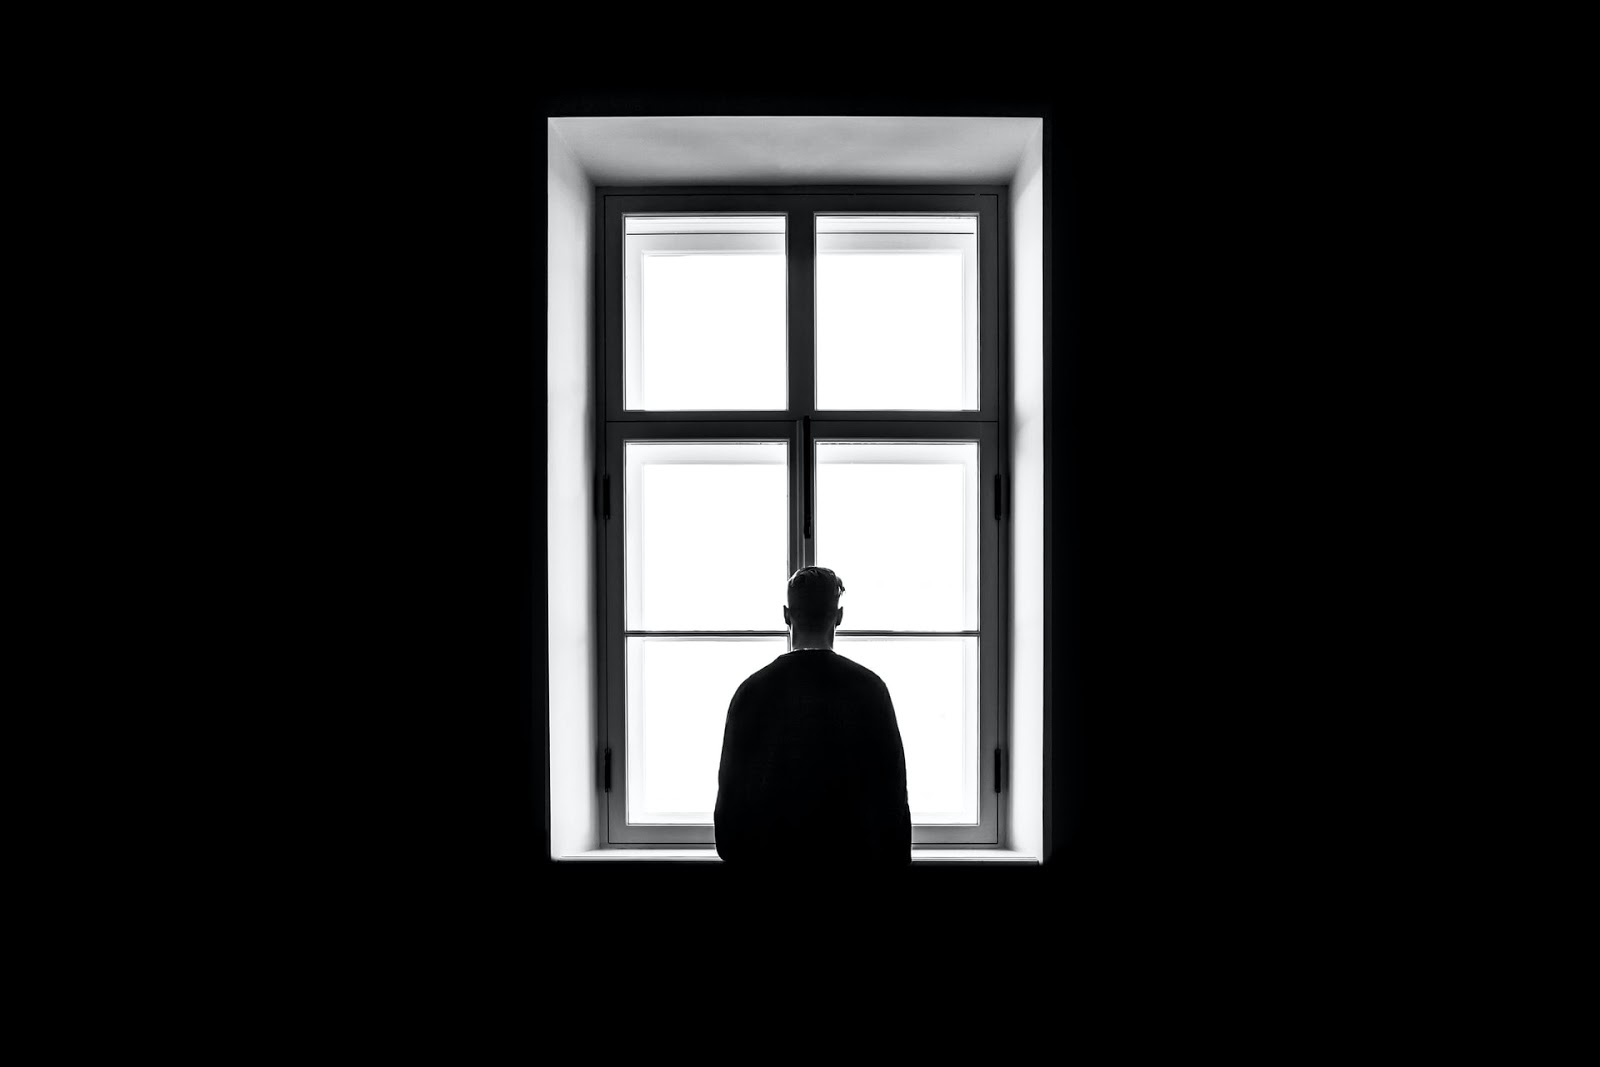 A man looking out a window symbolizing being alone.